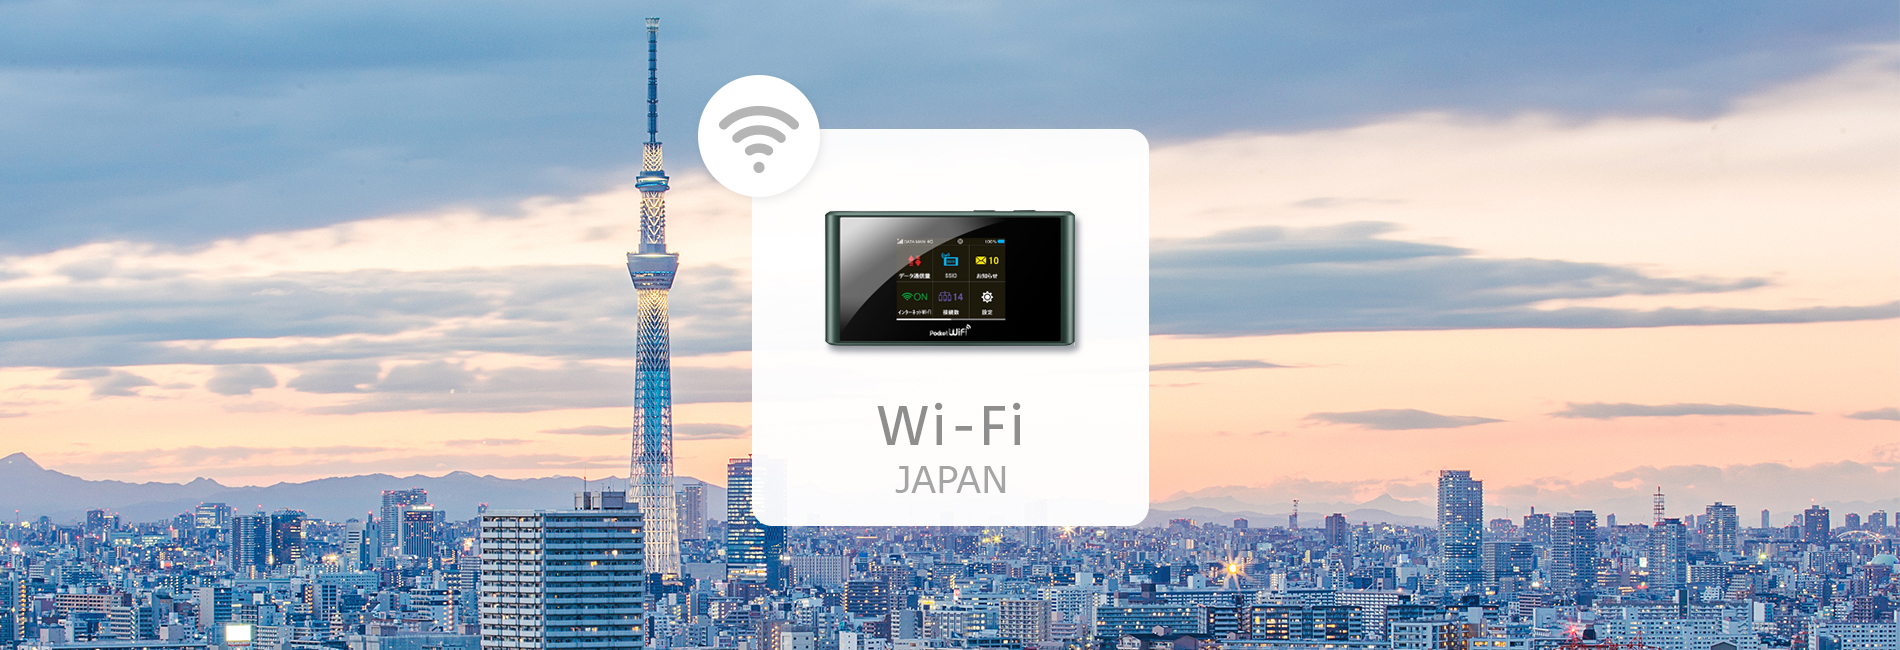 Japan Unlimited 4G Portable Wi-Fi Rental (Pick-Up at Japan Airports)